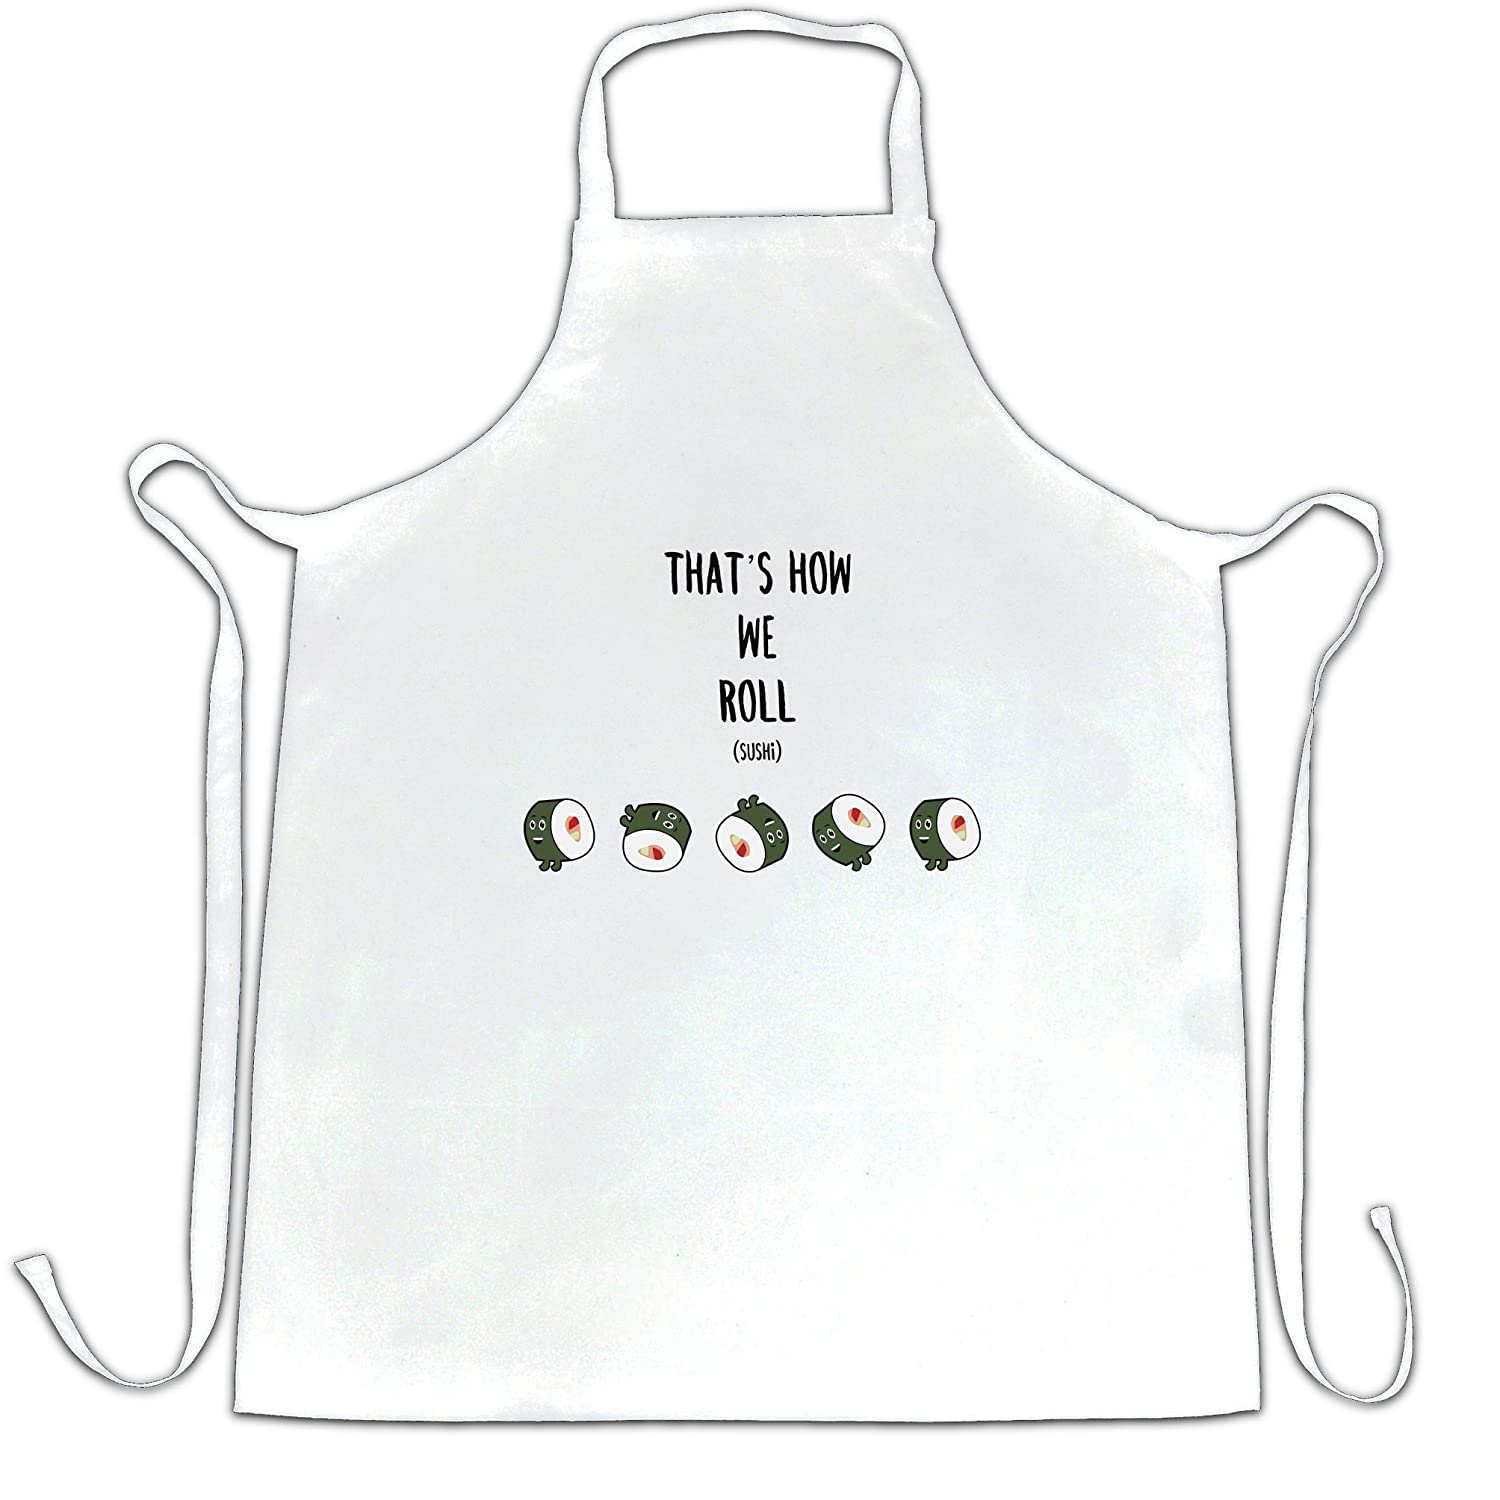 Funny Food Chefs Apron That's How We Sushi Roll Pun Slogan A-AP-01726-BLK